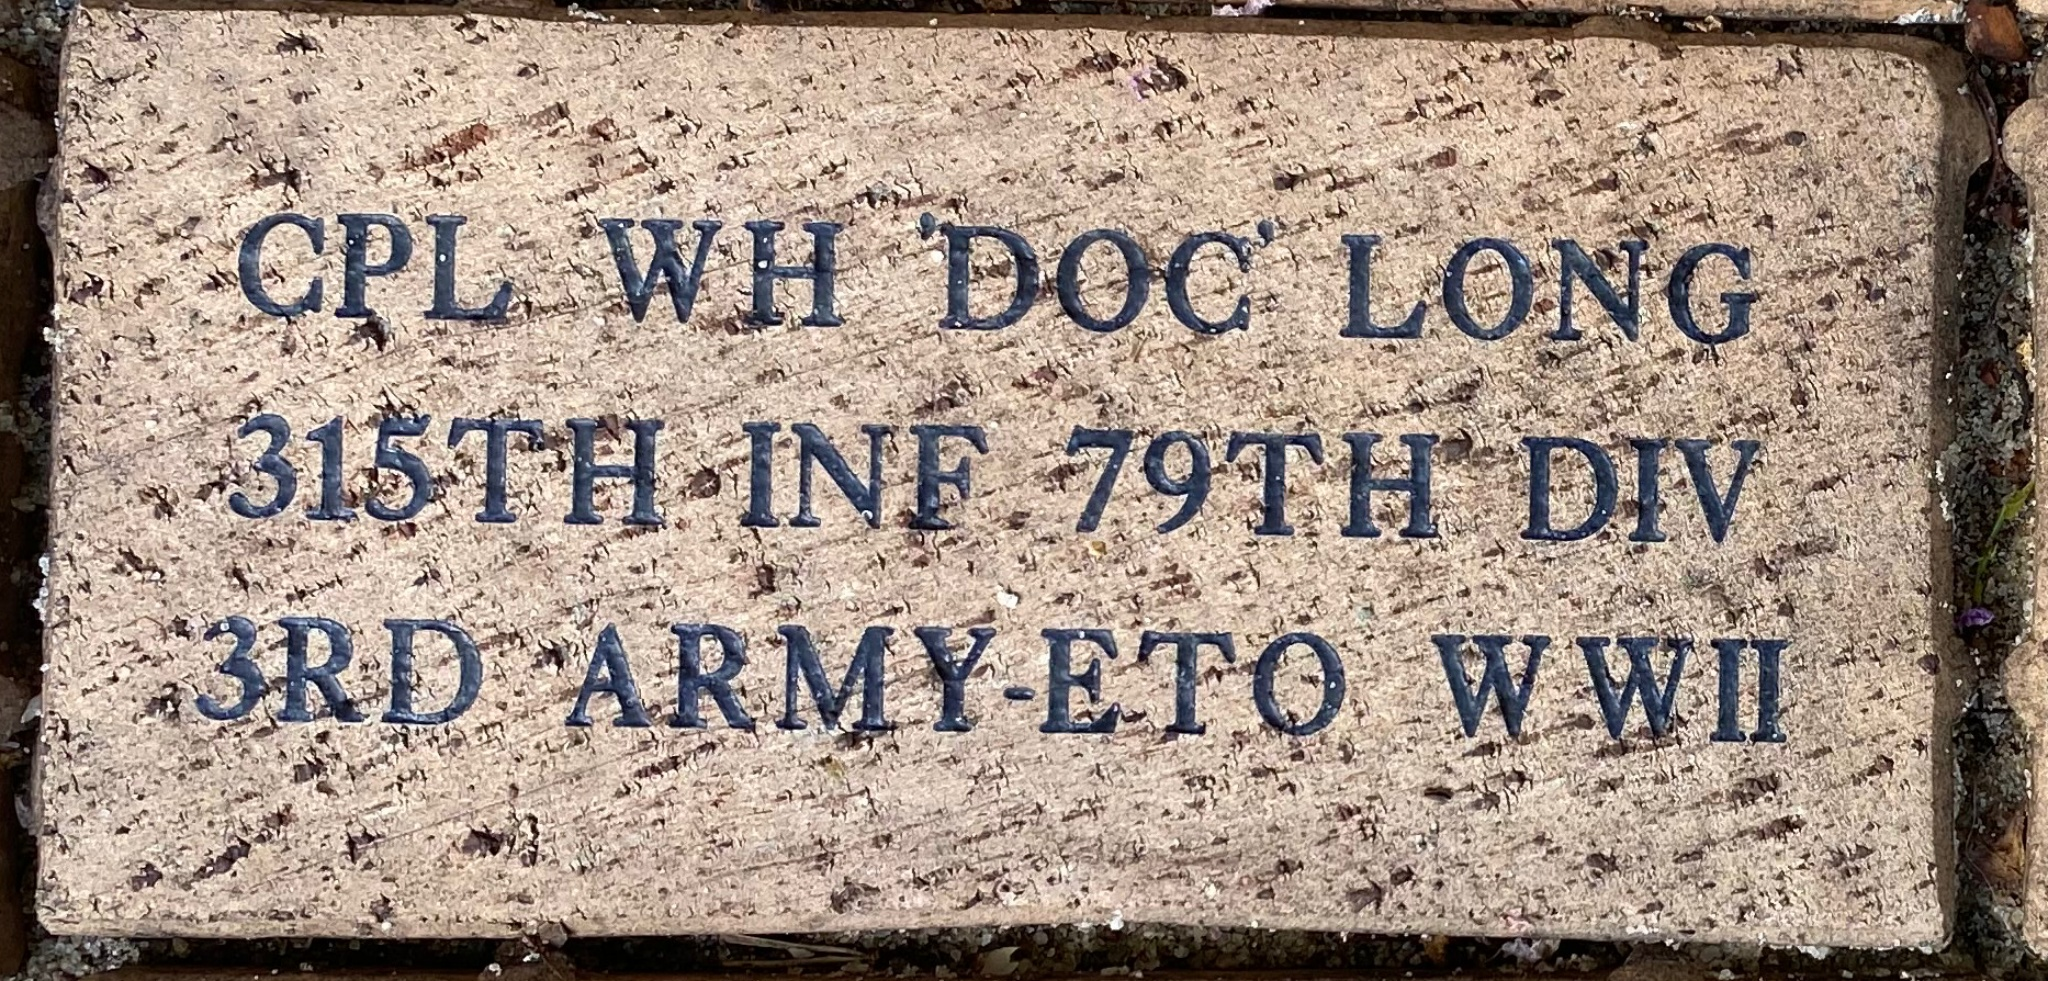 CPL WH 'DOC' LONG 315TH INF 79TH DIV 3RD ARMY ETO WWII